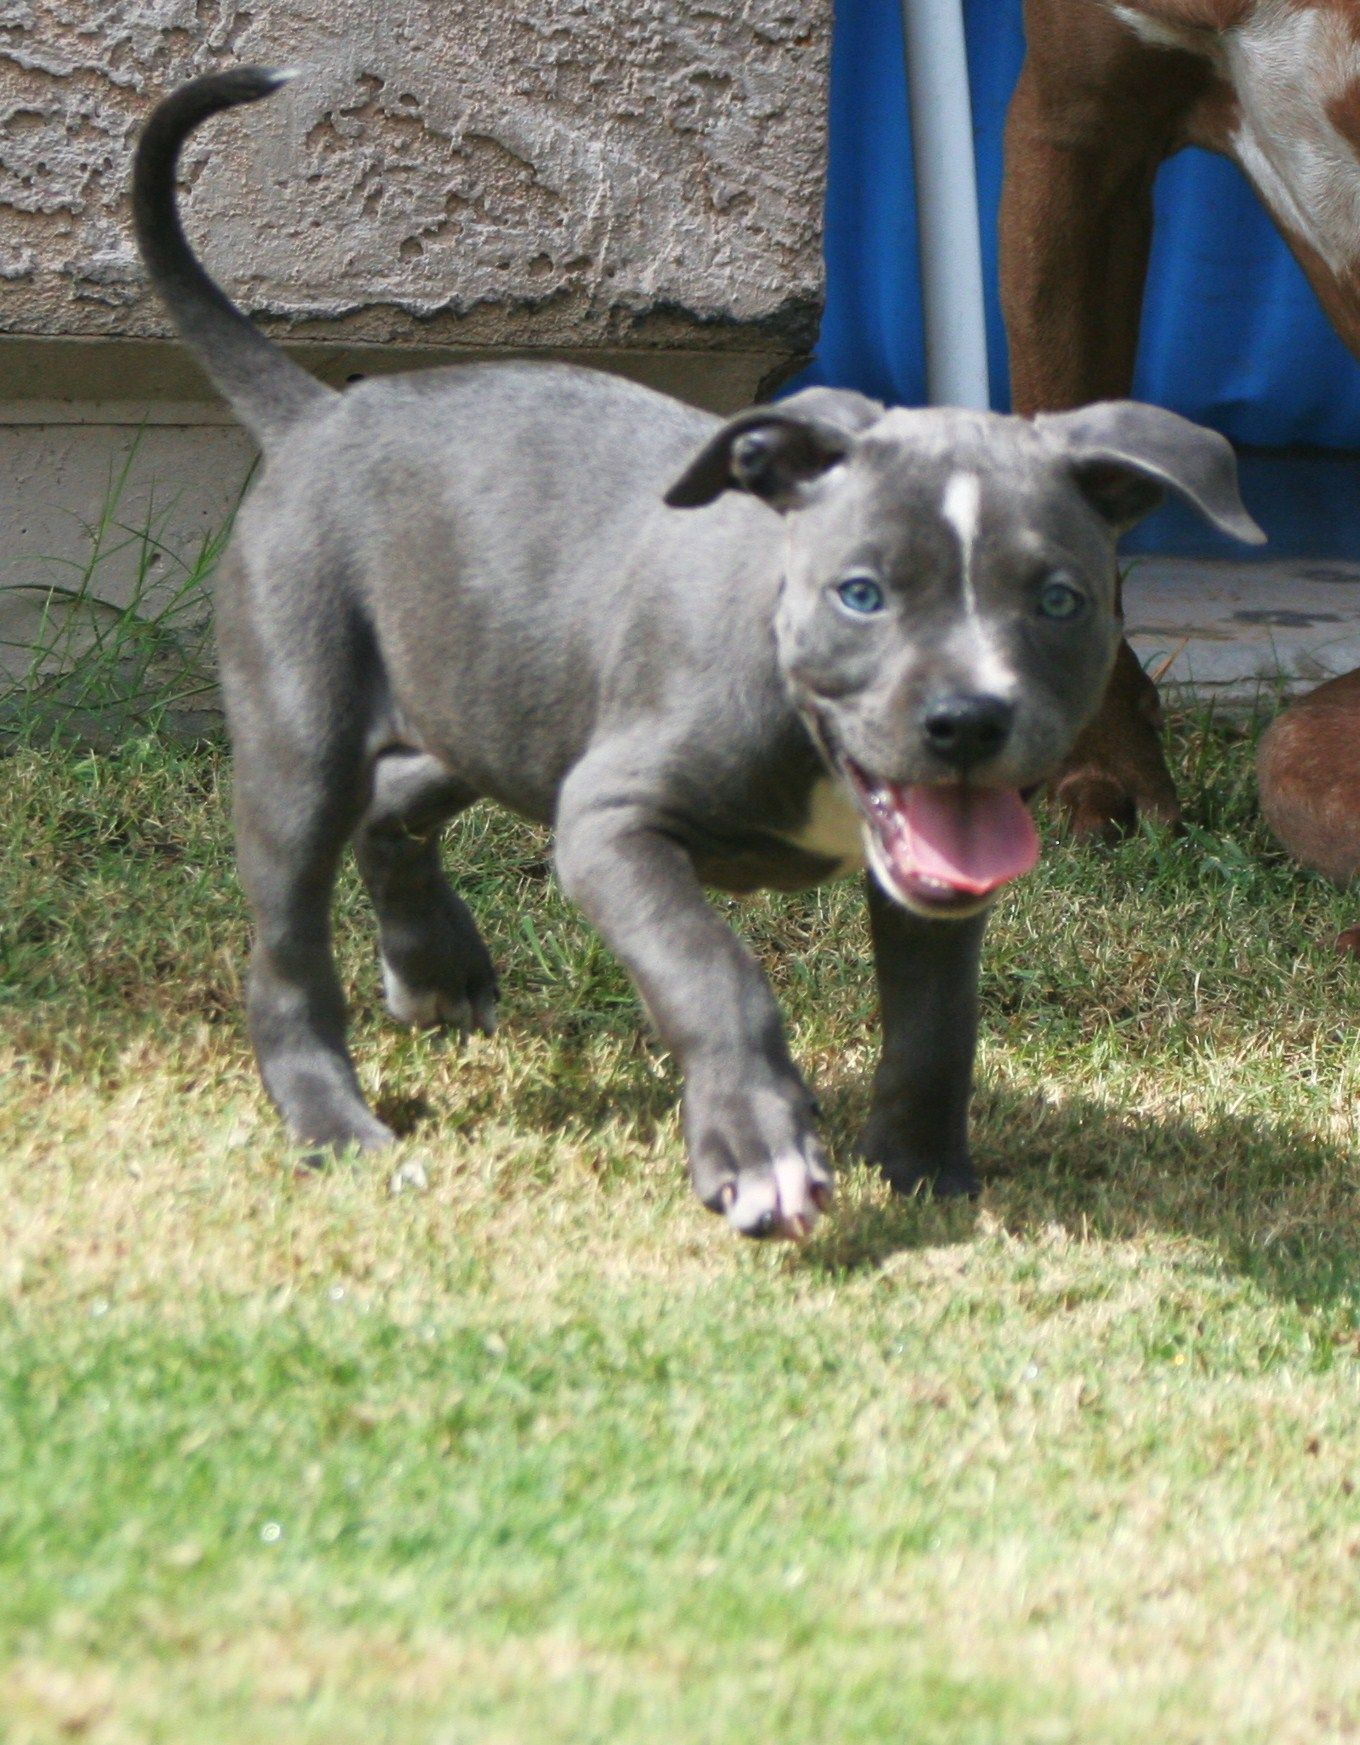 Pin By Carlos Araiz On Hashbrown S Friends Dogs And Puppies Blue Nose Pitbull Puppies Puppies